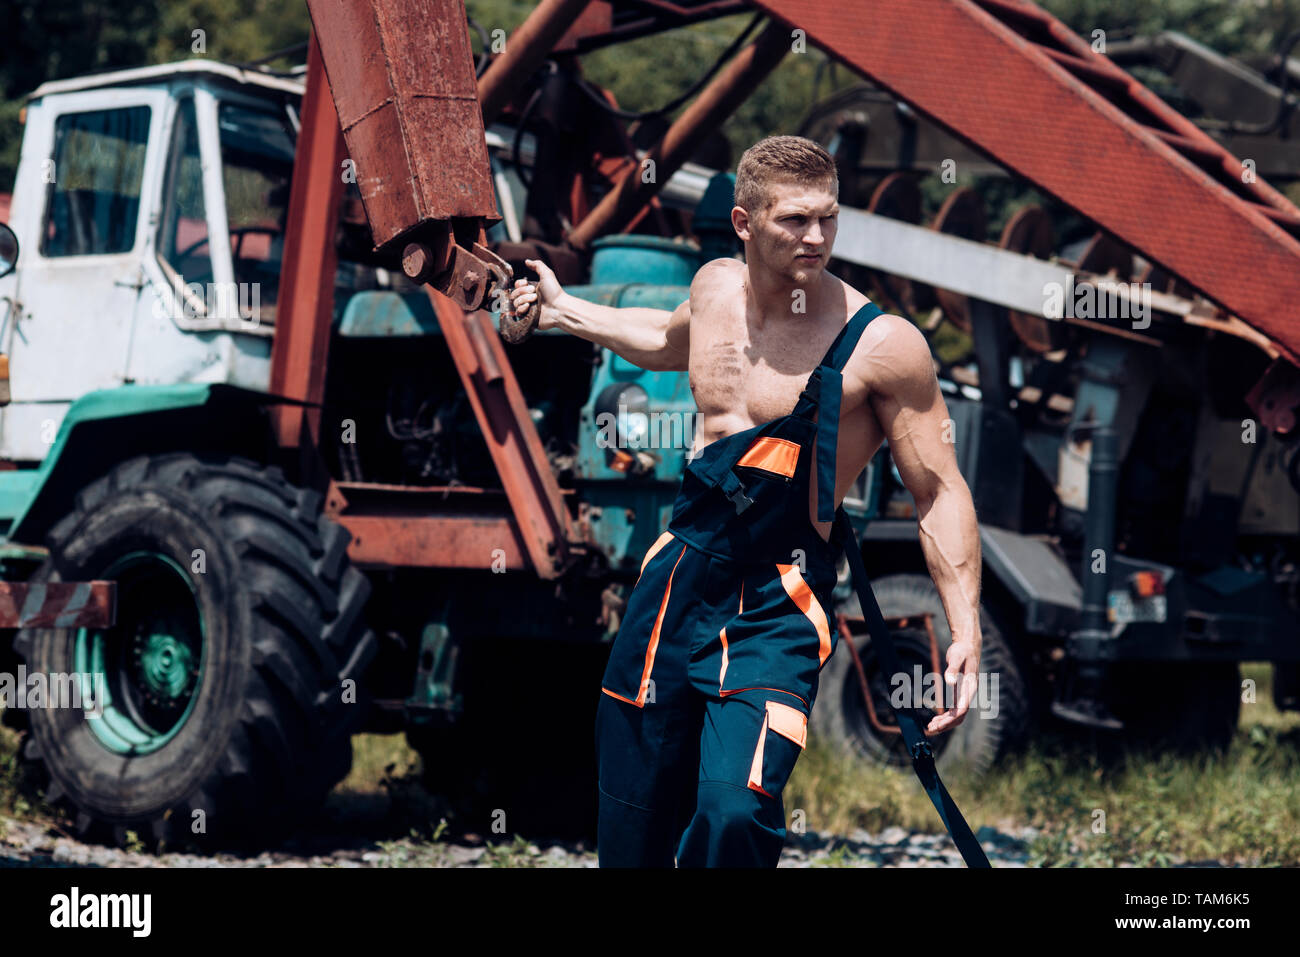 Power concept. Power man pull tractor with crane. Power lifter at construction site. Feel the power - Stock Image